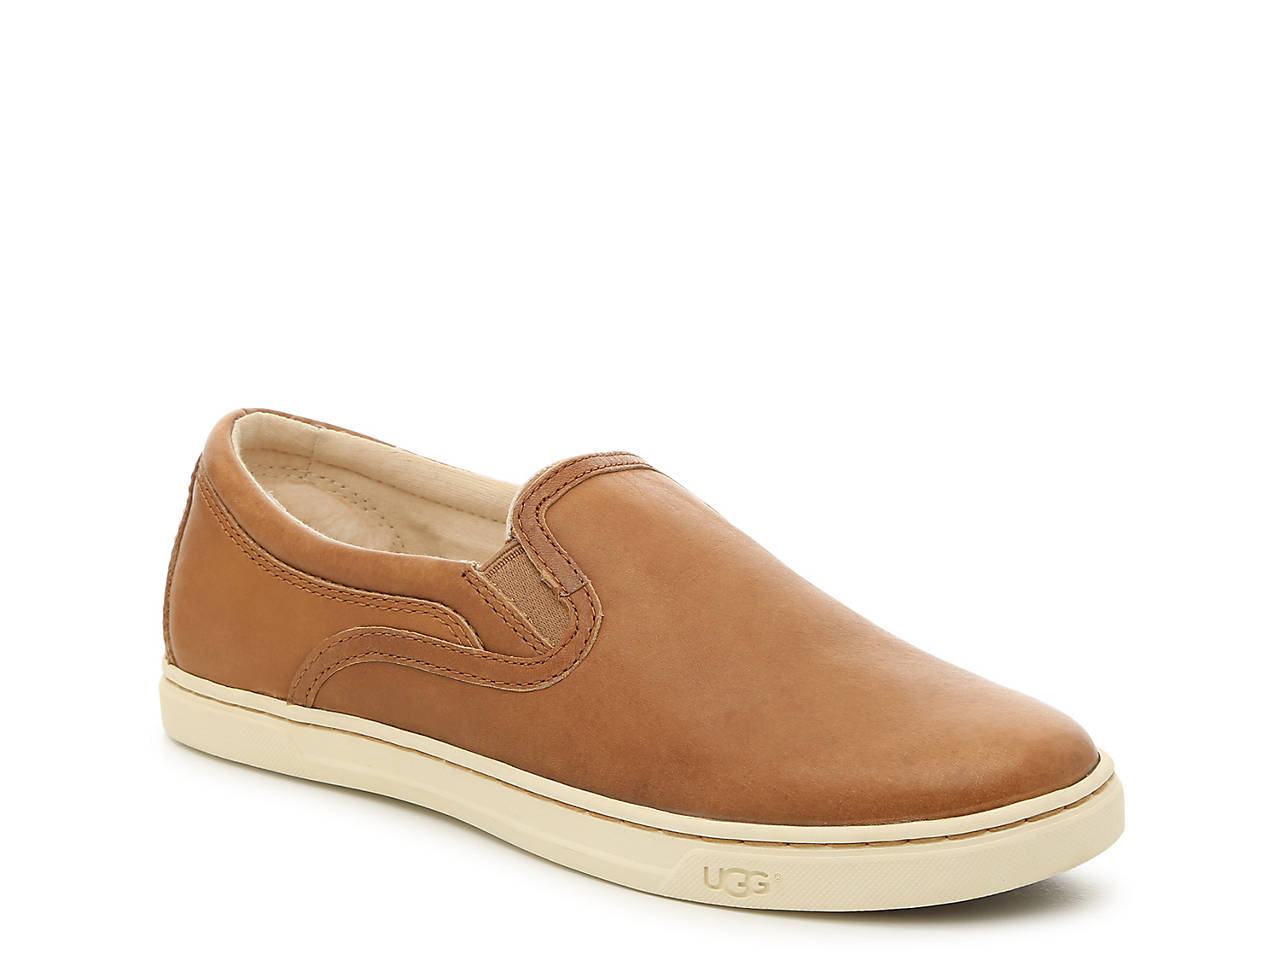 ugg suede slip on sneakers